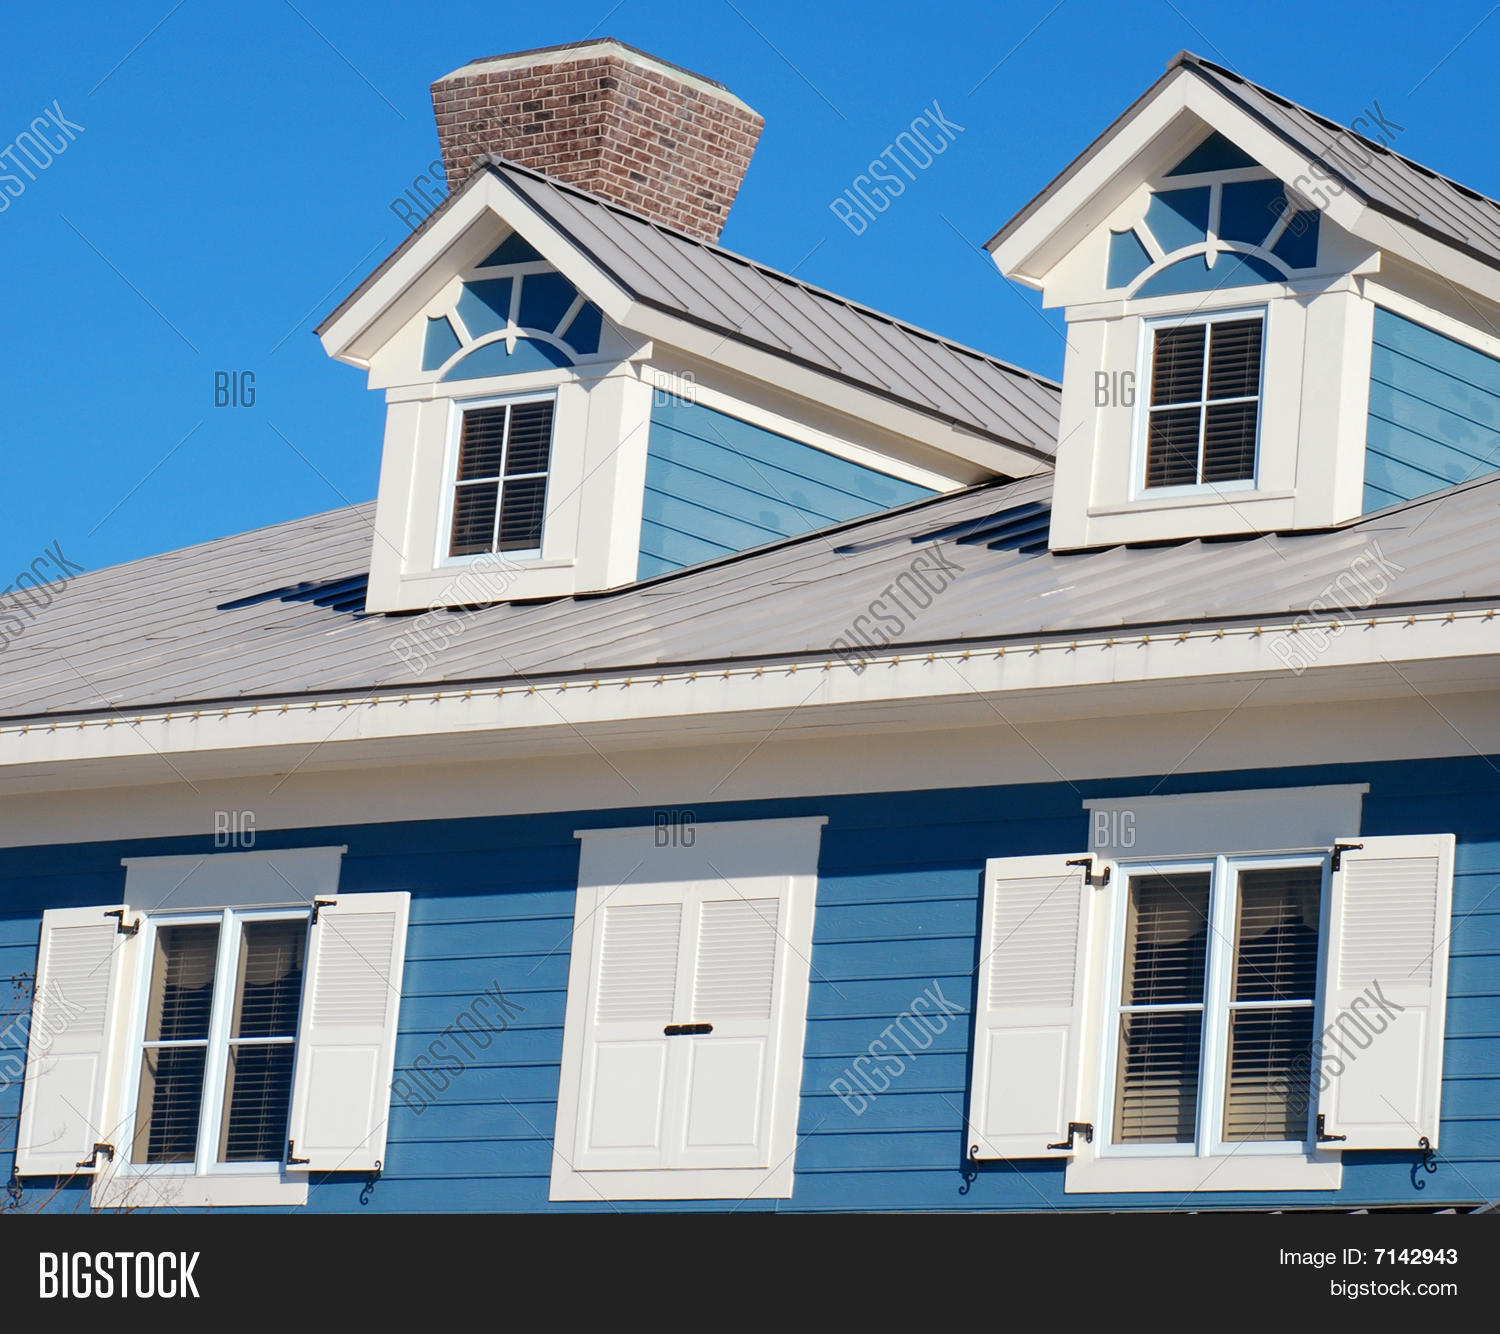 Victorian House Dormers Image Photo